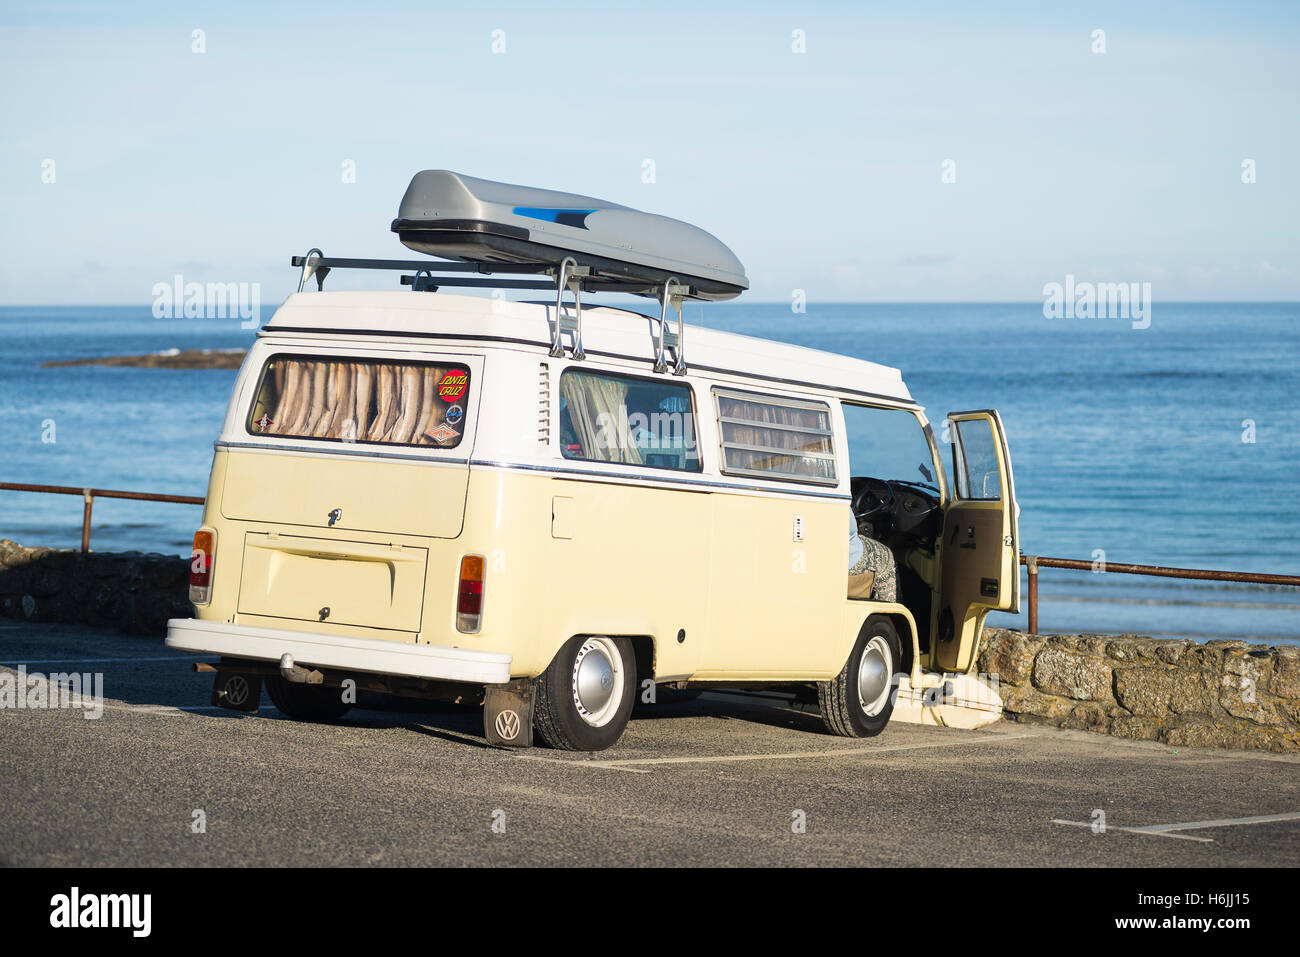 vw bus beach stock photos vw bus beach stock images alamy. Black Bedroom Furniture Sets. Home Design Ideas